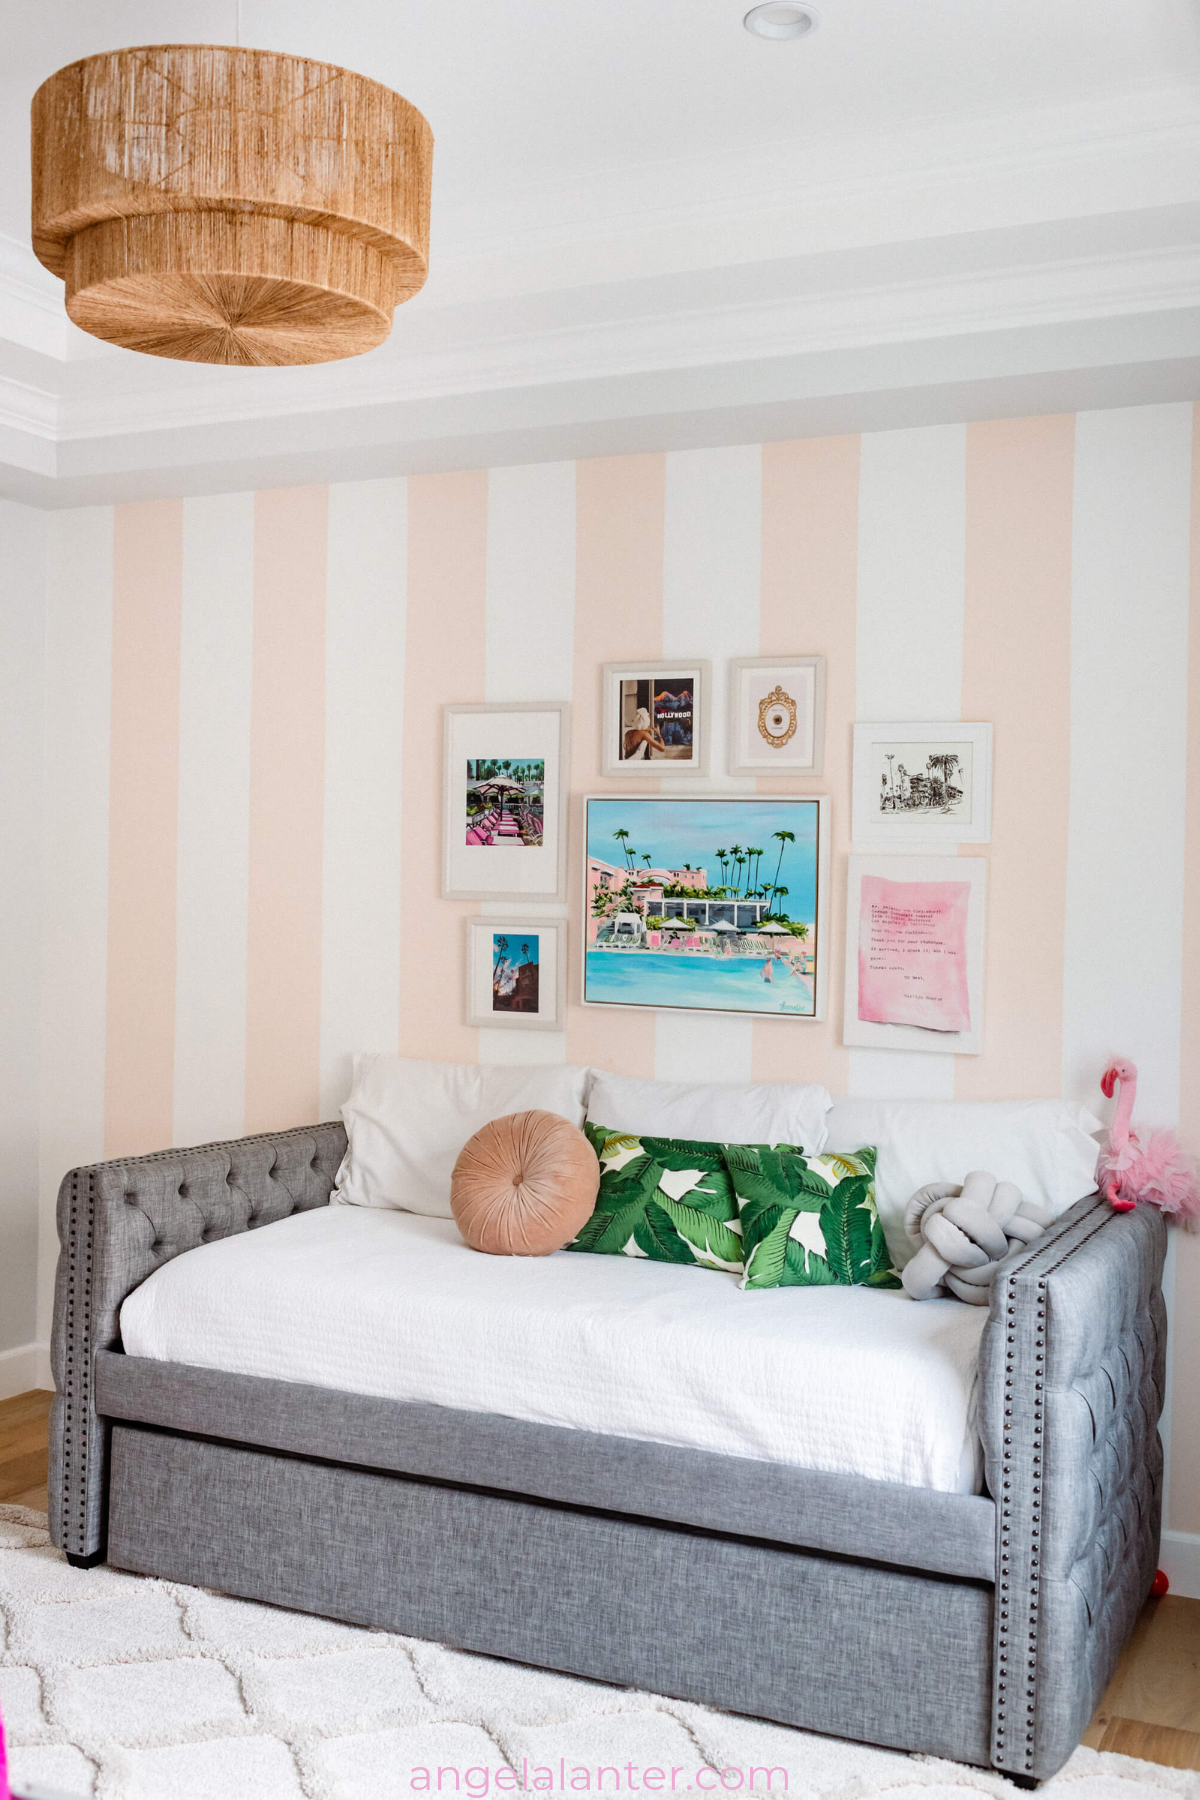 Hotel Room Accessories: Our Beverly Hills Hotel Inspired Playroom Tour